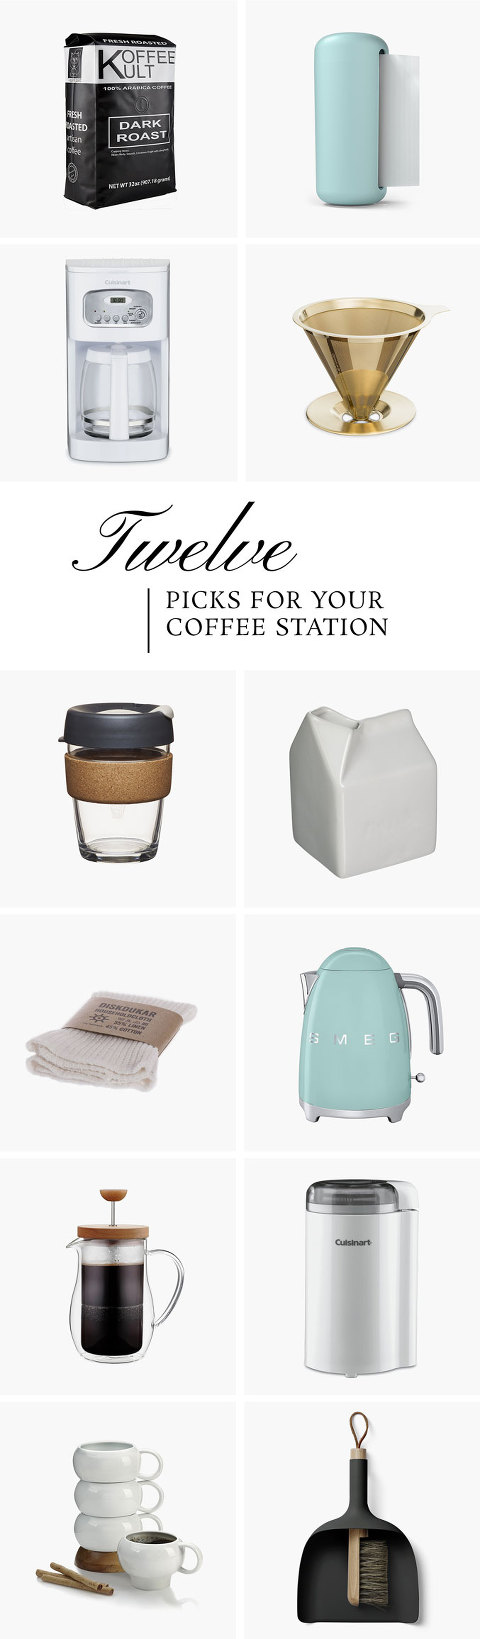 Everything You Need For Your Coffee Station | dreamgreendiy.com